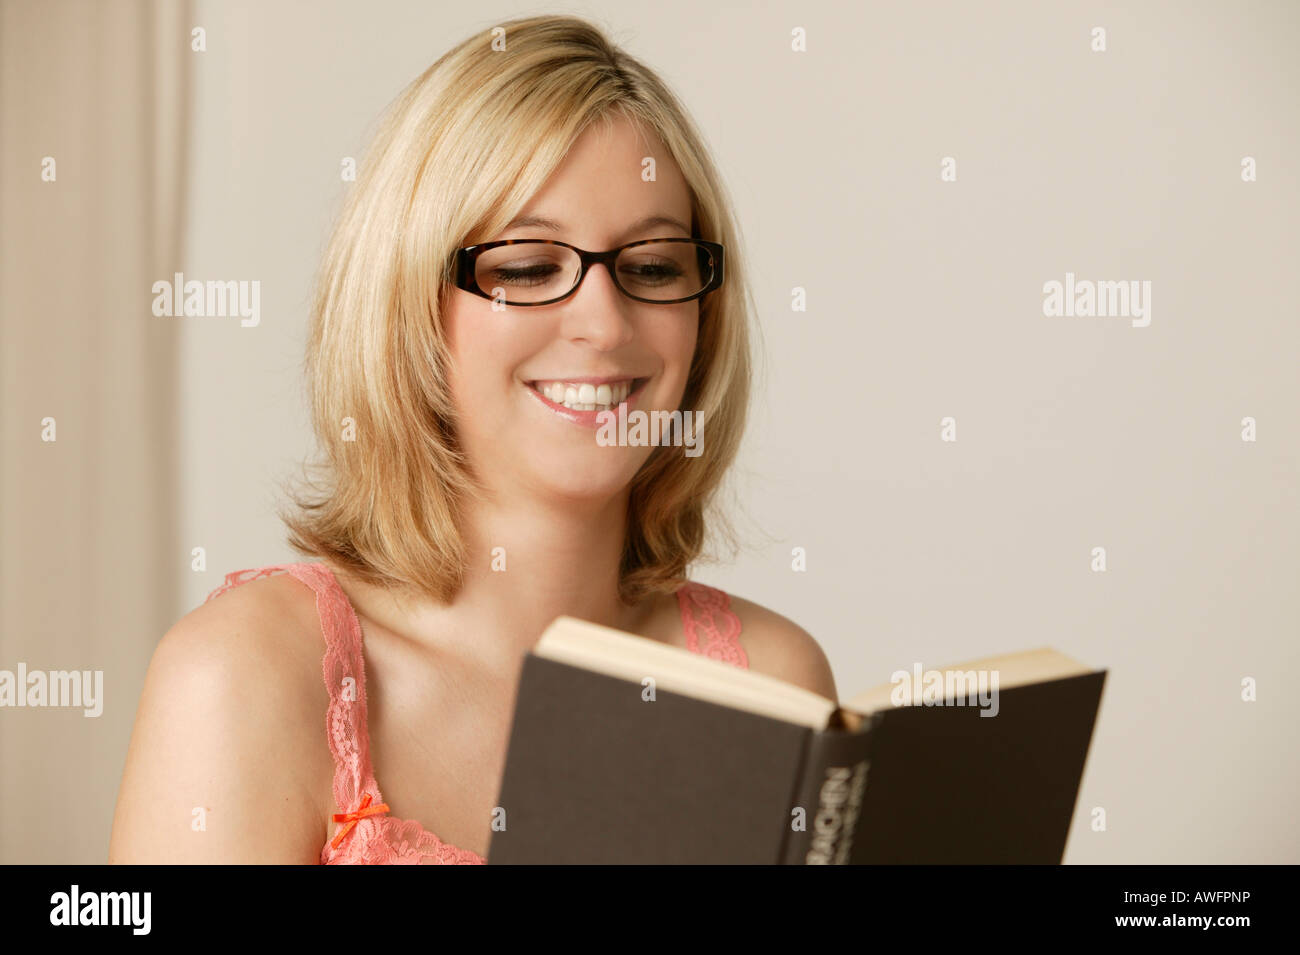 young blonde woman wearing glasses reading a book stock photo